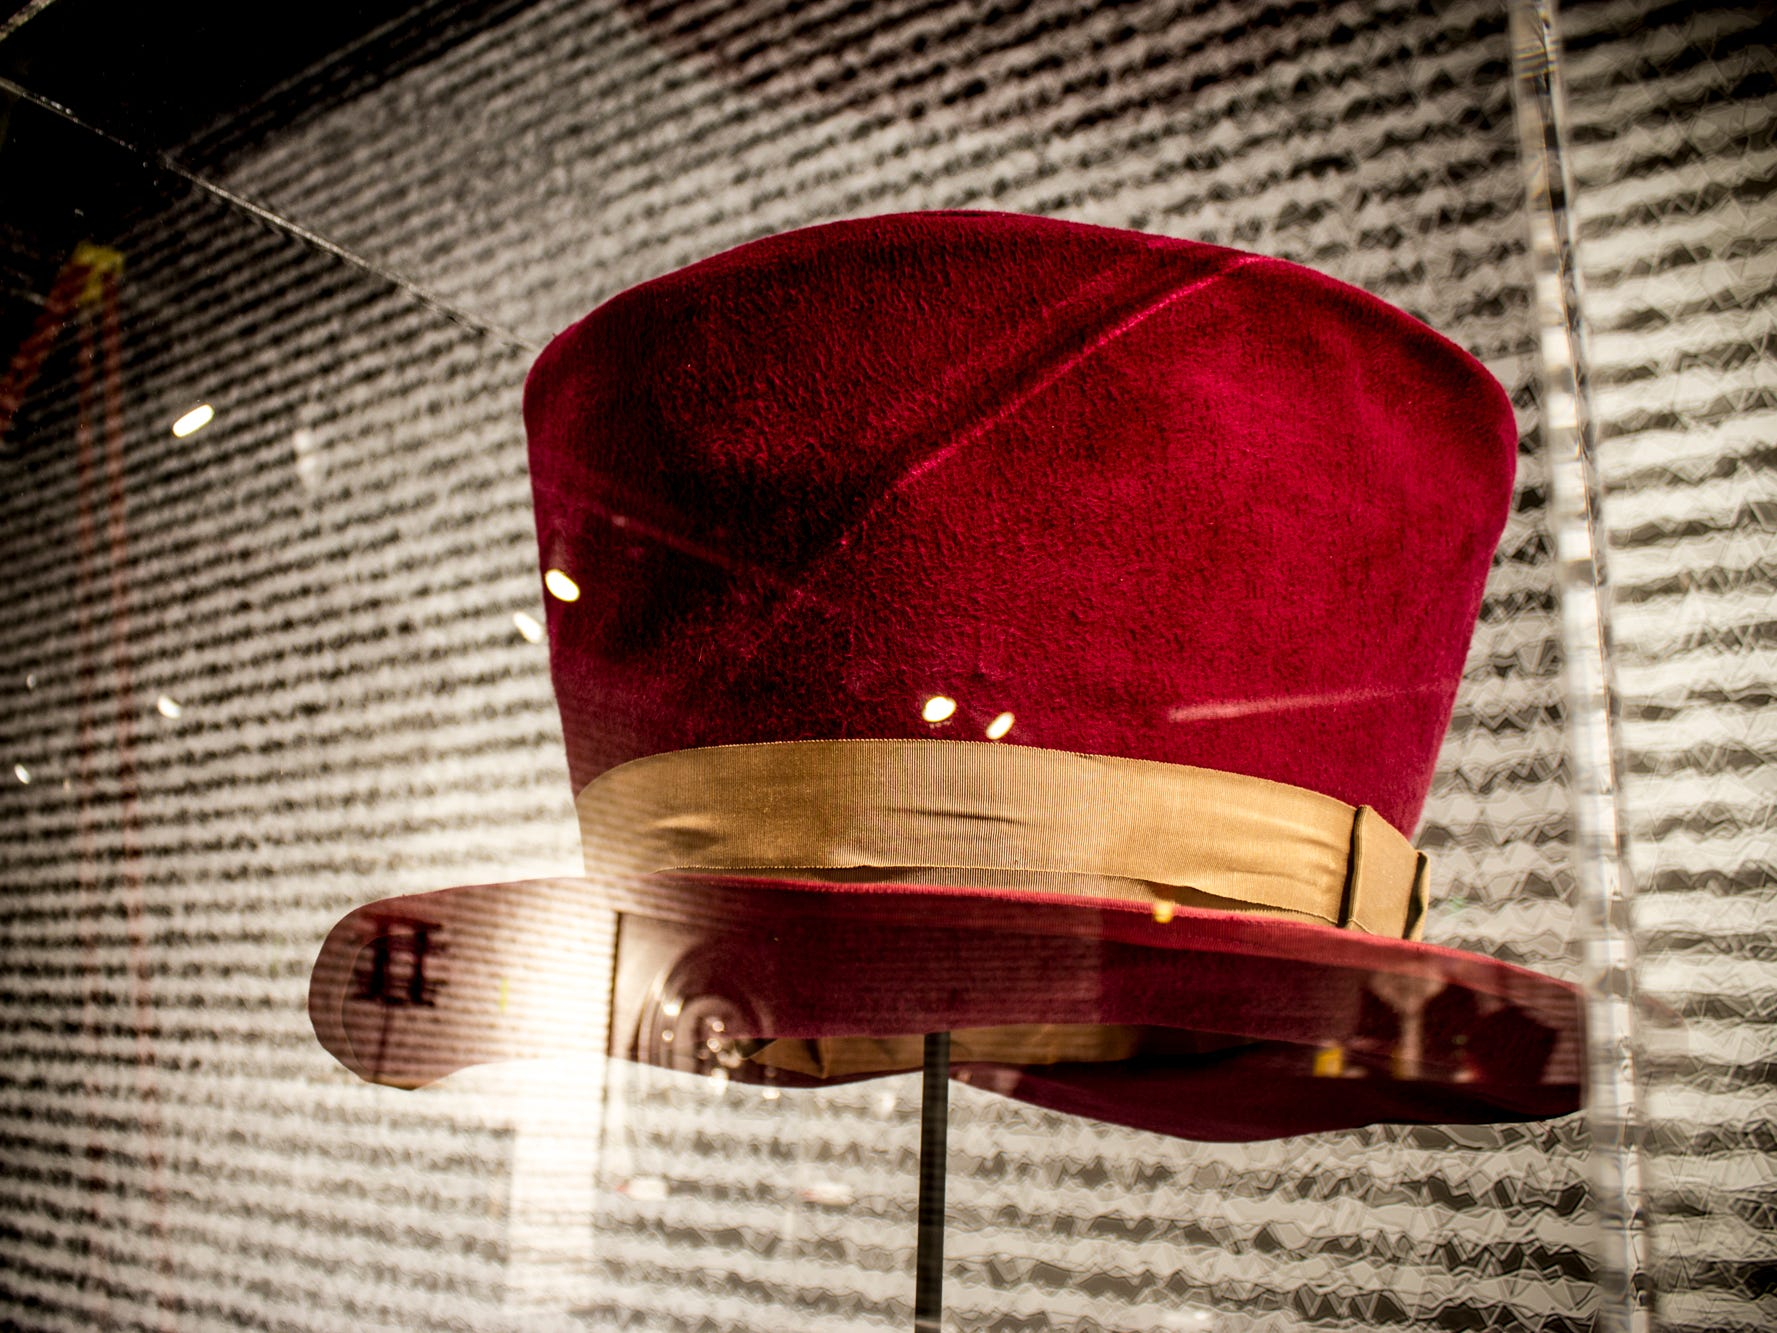 """Part of the """"Stay Tuned: Rock on TV"""" exhibit at the Rock & Roll Hall of Fame, this hat was worn by Tom Petty in the video """"Don't Come Around Here No More,"""" inspired by the children's fantasy novel, """"Alice in Wonderland."""""""